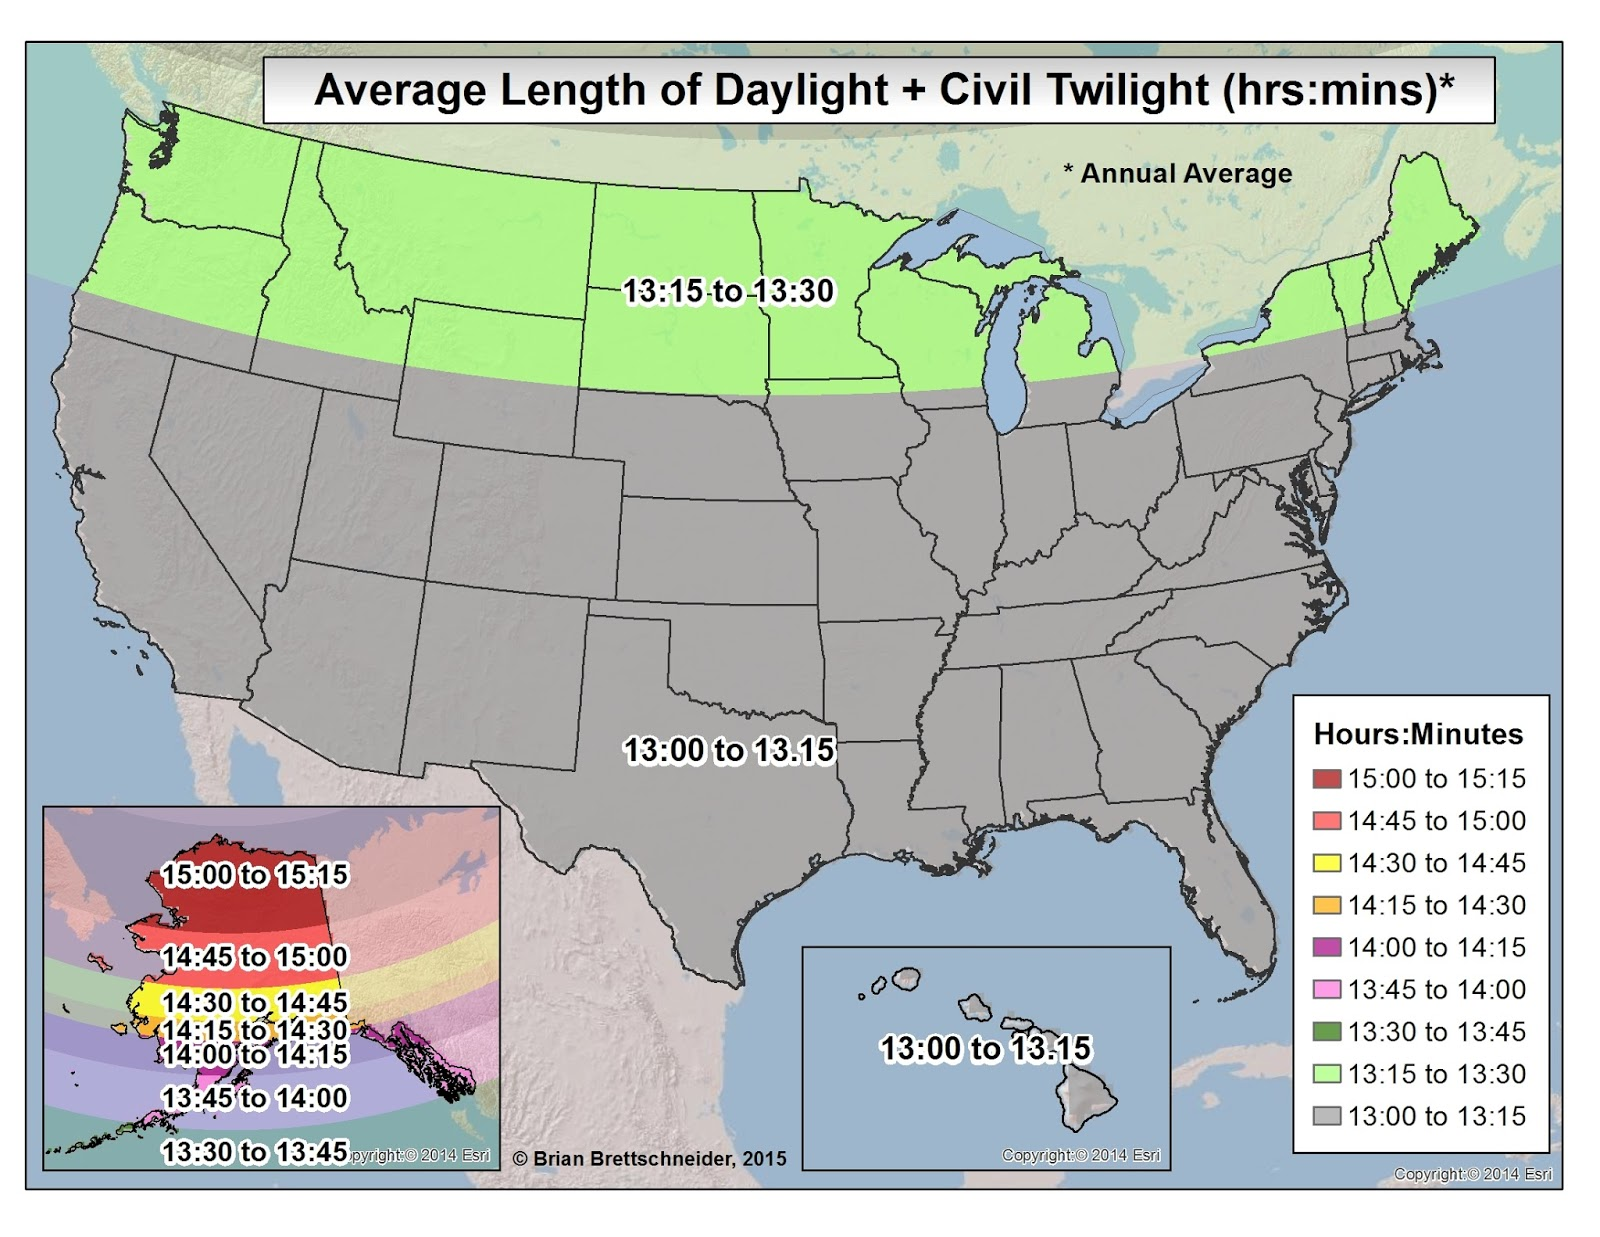 Brian bs climate blog daylight and twilight figure 5 average annual length of daylight plus civil twilight the average is for all 365 days of the year the map perspective is lower 48centric gumiabroncs Image collections